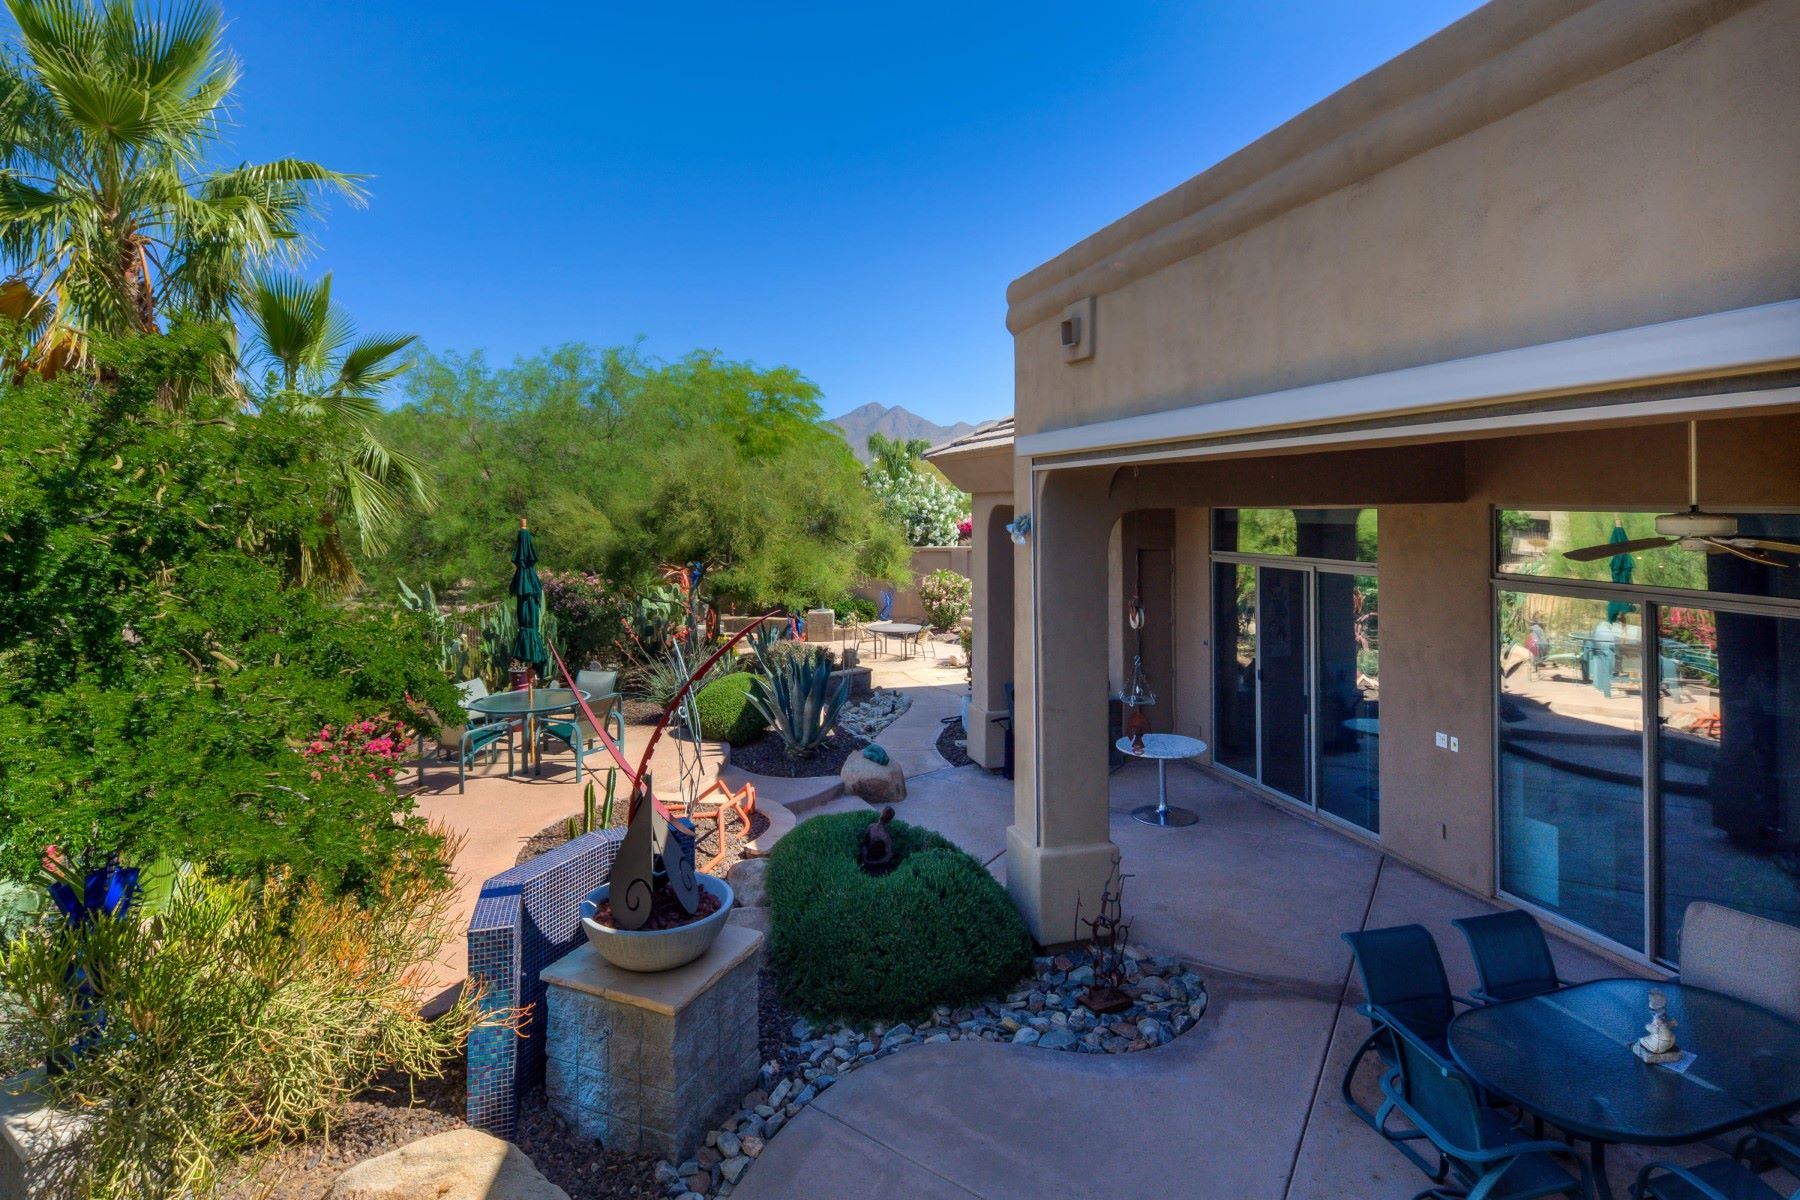 獨棟家庭住宅 為 出售 在 Great home nestled in the Regal at Stonegate 11640 E Arabian Park Dr Scottsdale, 亞利桑那州, 85259 美國